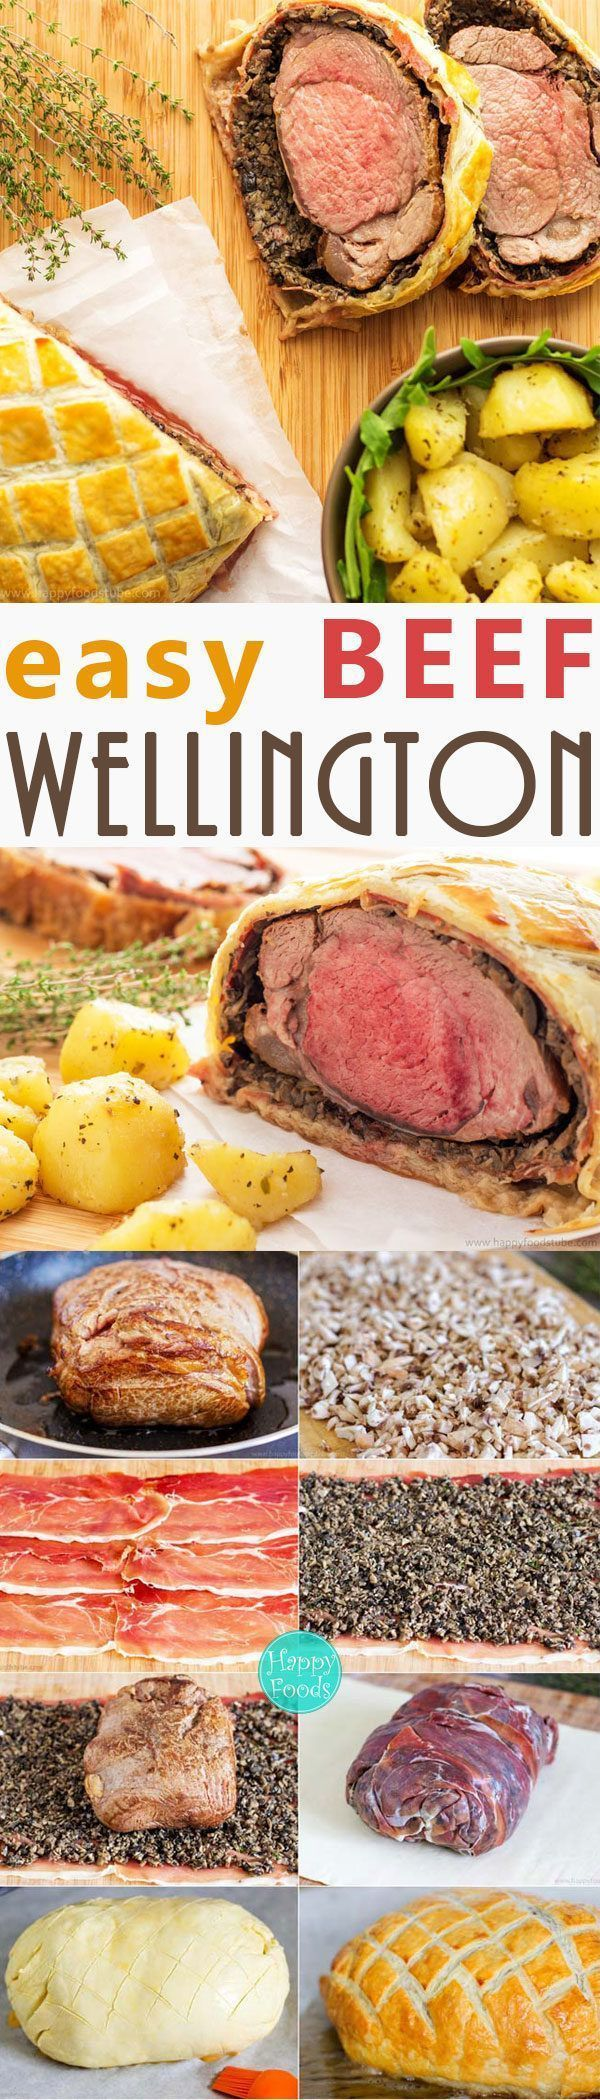 Easy Beef Wellington with Mushroom & Jam�n - Fine Dining, Classical British Food, Home Cooking, Best Beef Wellington, Recipe | happyfoodstube.com